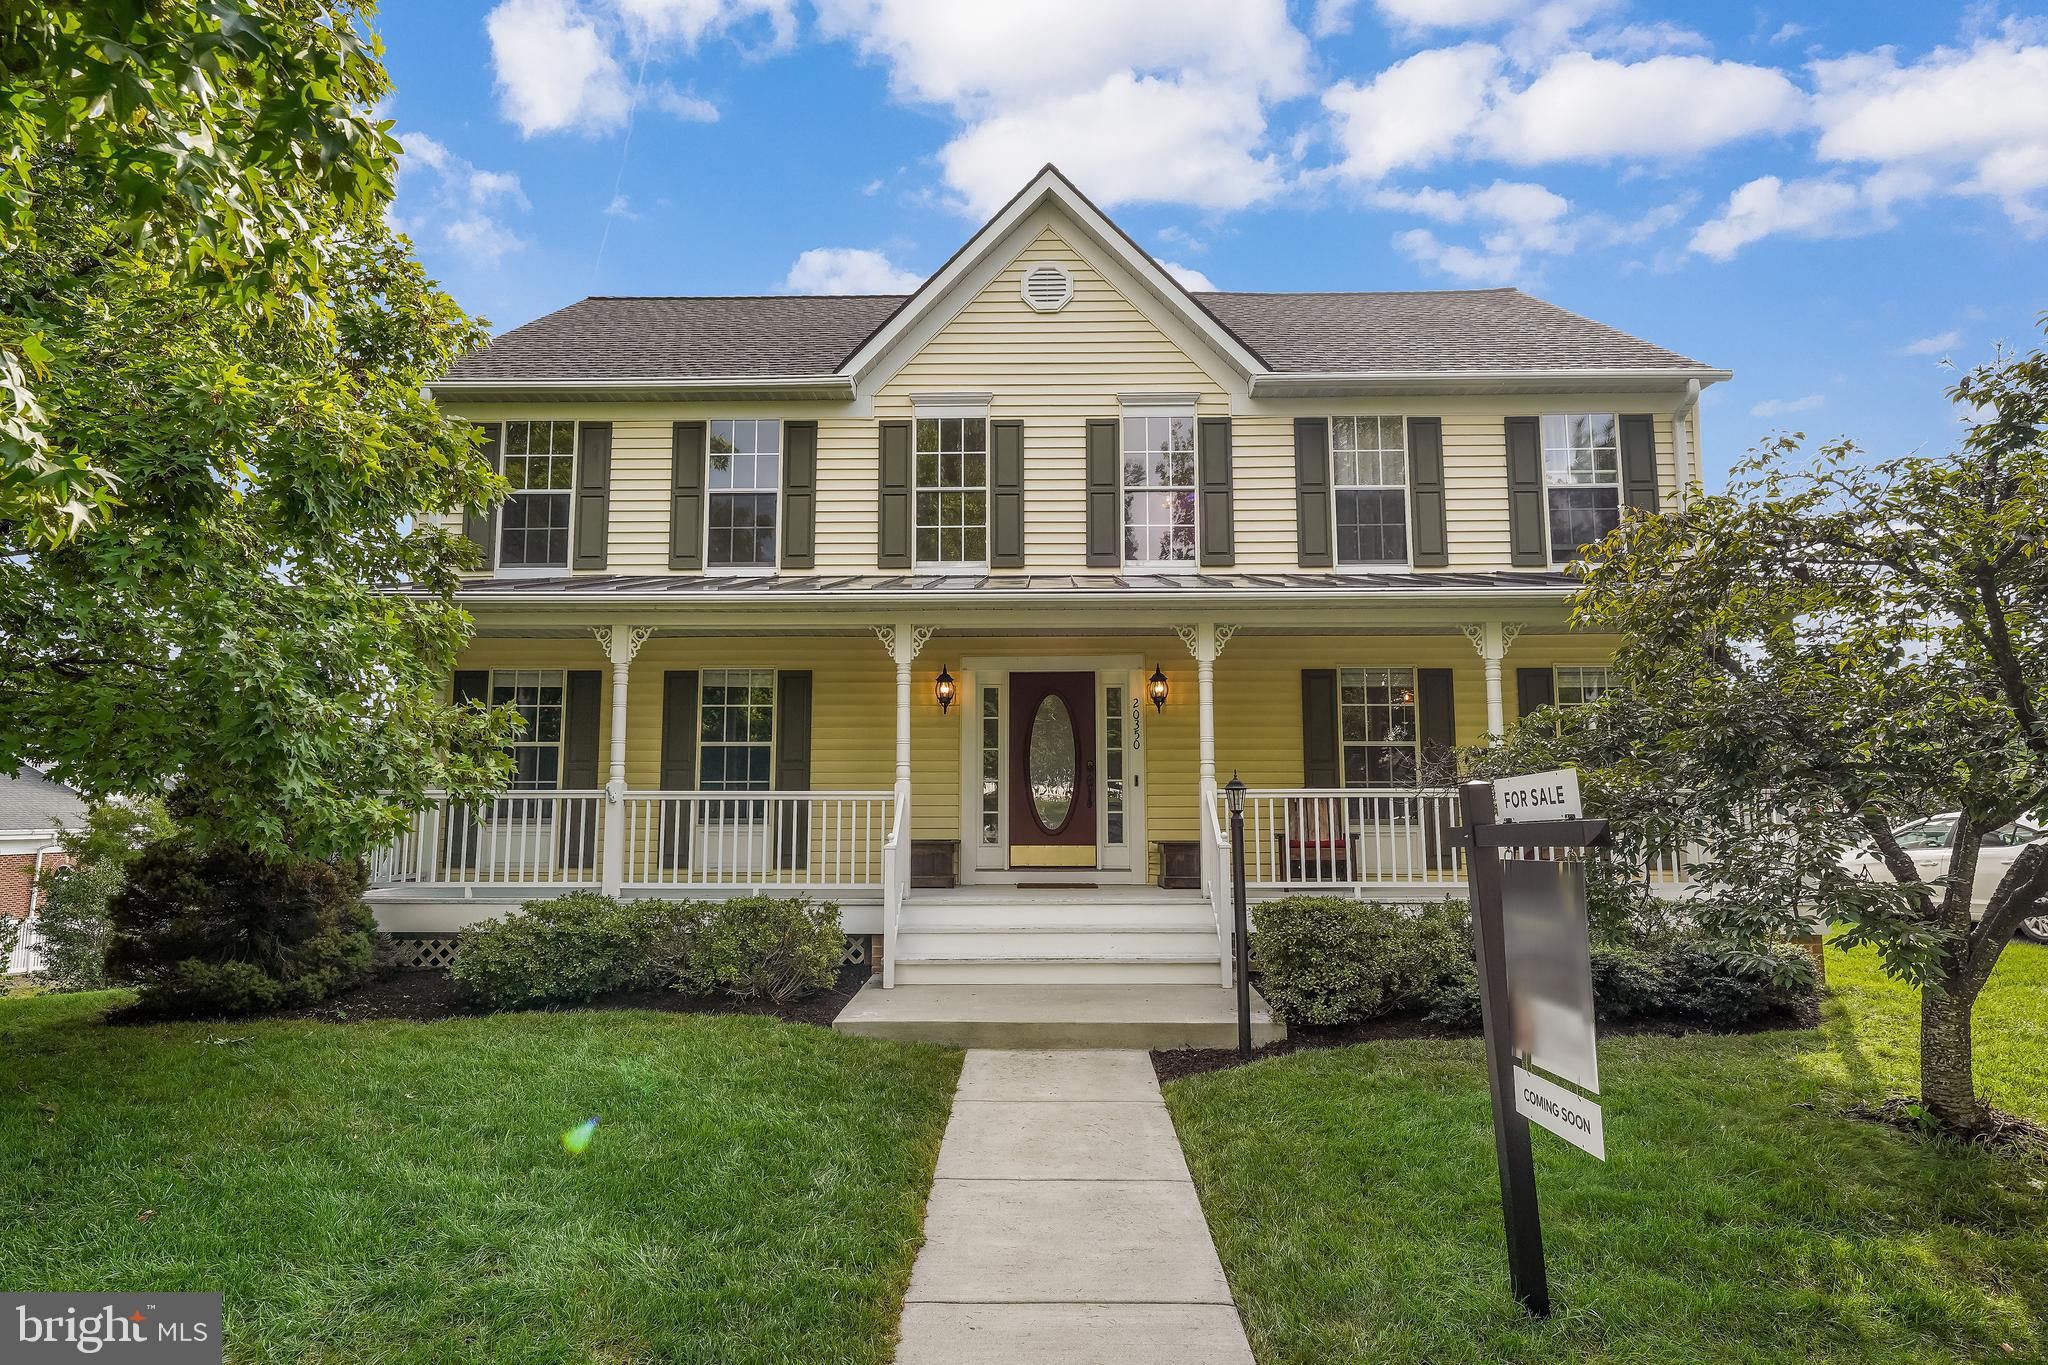 """This house has had only 2 owners and has been meticulously maintained.  This is a warm and welcoming home from the minute you step on the front porch.  Entire house has been freshly painted.  Hardwoods and laminate on the main level and new carpet on the upper level in 2019.  All new stainless steel appliances in the kitchen replaced in 2019 - gas range, built-in microwave, refrigerator, dishwasher, disposal.  New washing machine and dryer in 2019.    New granite in kitchen in 2019.   Tile back splash in the kitchen in 2020.  Hot water heater was replaced in 2017.   The roof is less than 5 years old.   The furnace and hvac were replaced in 2016.  The hot water heater was replaced in 2017.  Gutters have leaf guards.  New R-30 insulation added in 2020.  The current owners have used the fireplace, it works  but """"As-Is"""".   Painter coming on Wed to take care of sprucing up outside trim, front porch and decks.  WOW - not much left to do except move-in and make it your home.  The community park is right across the street.  This home will not disappoint you."""